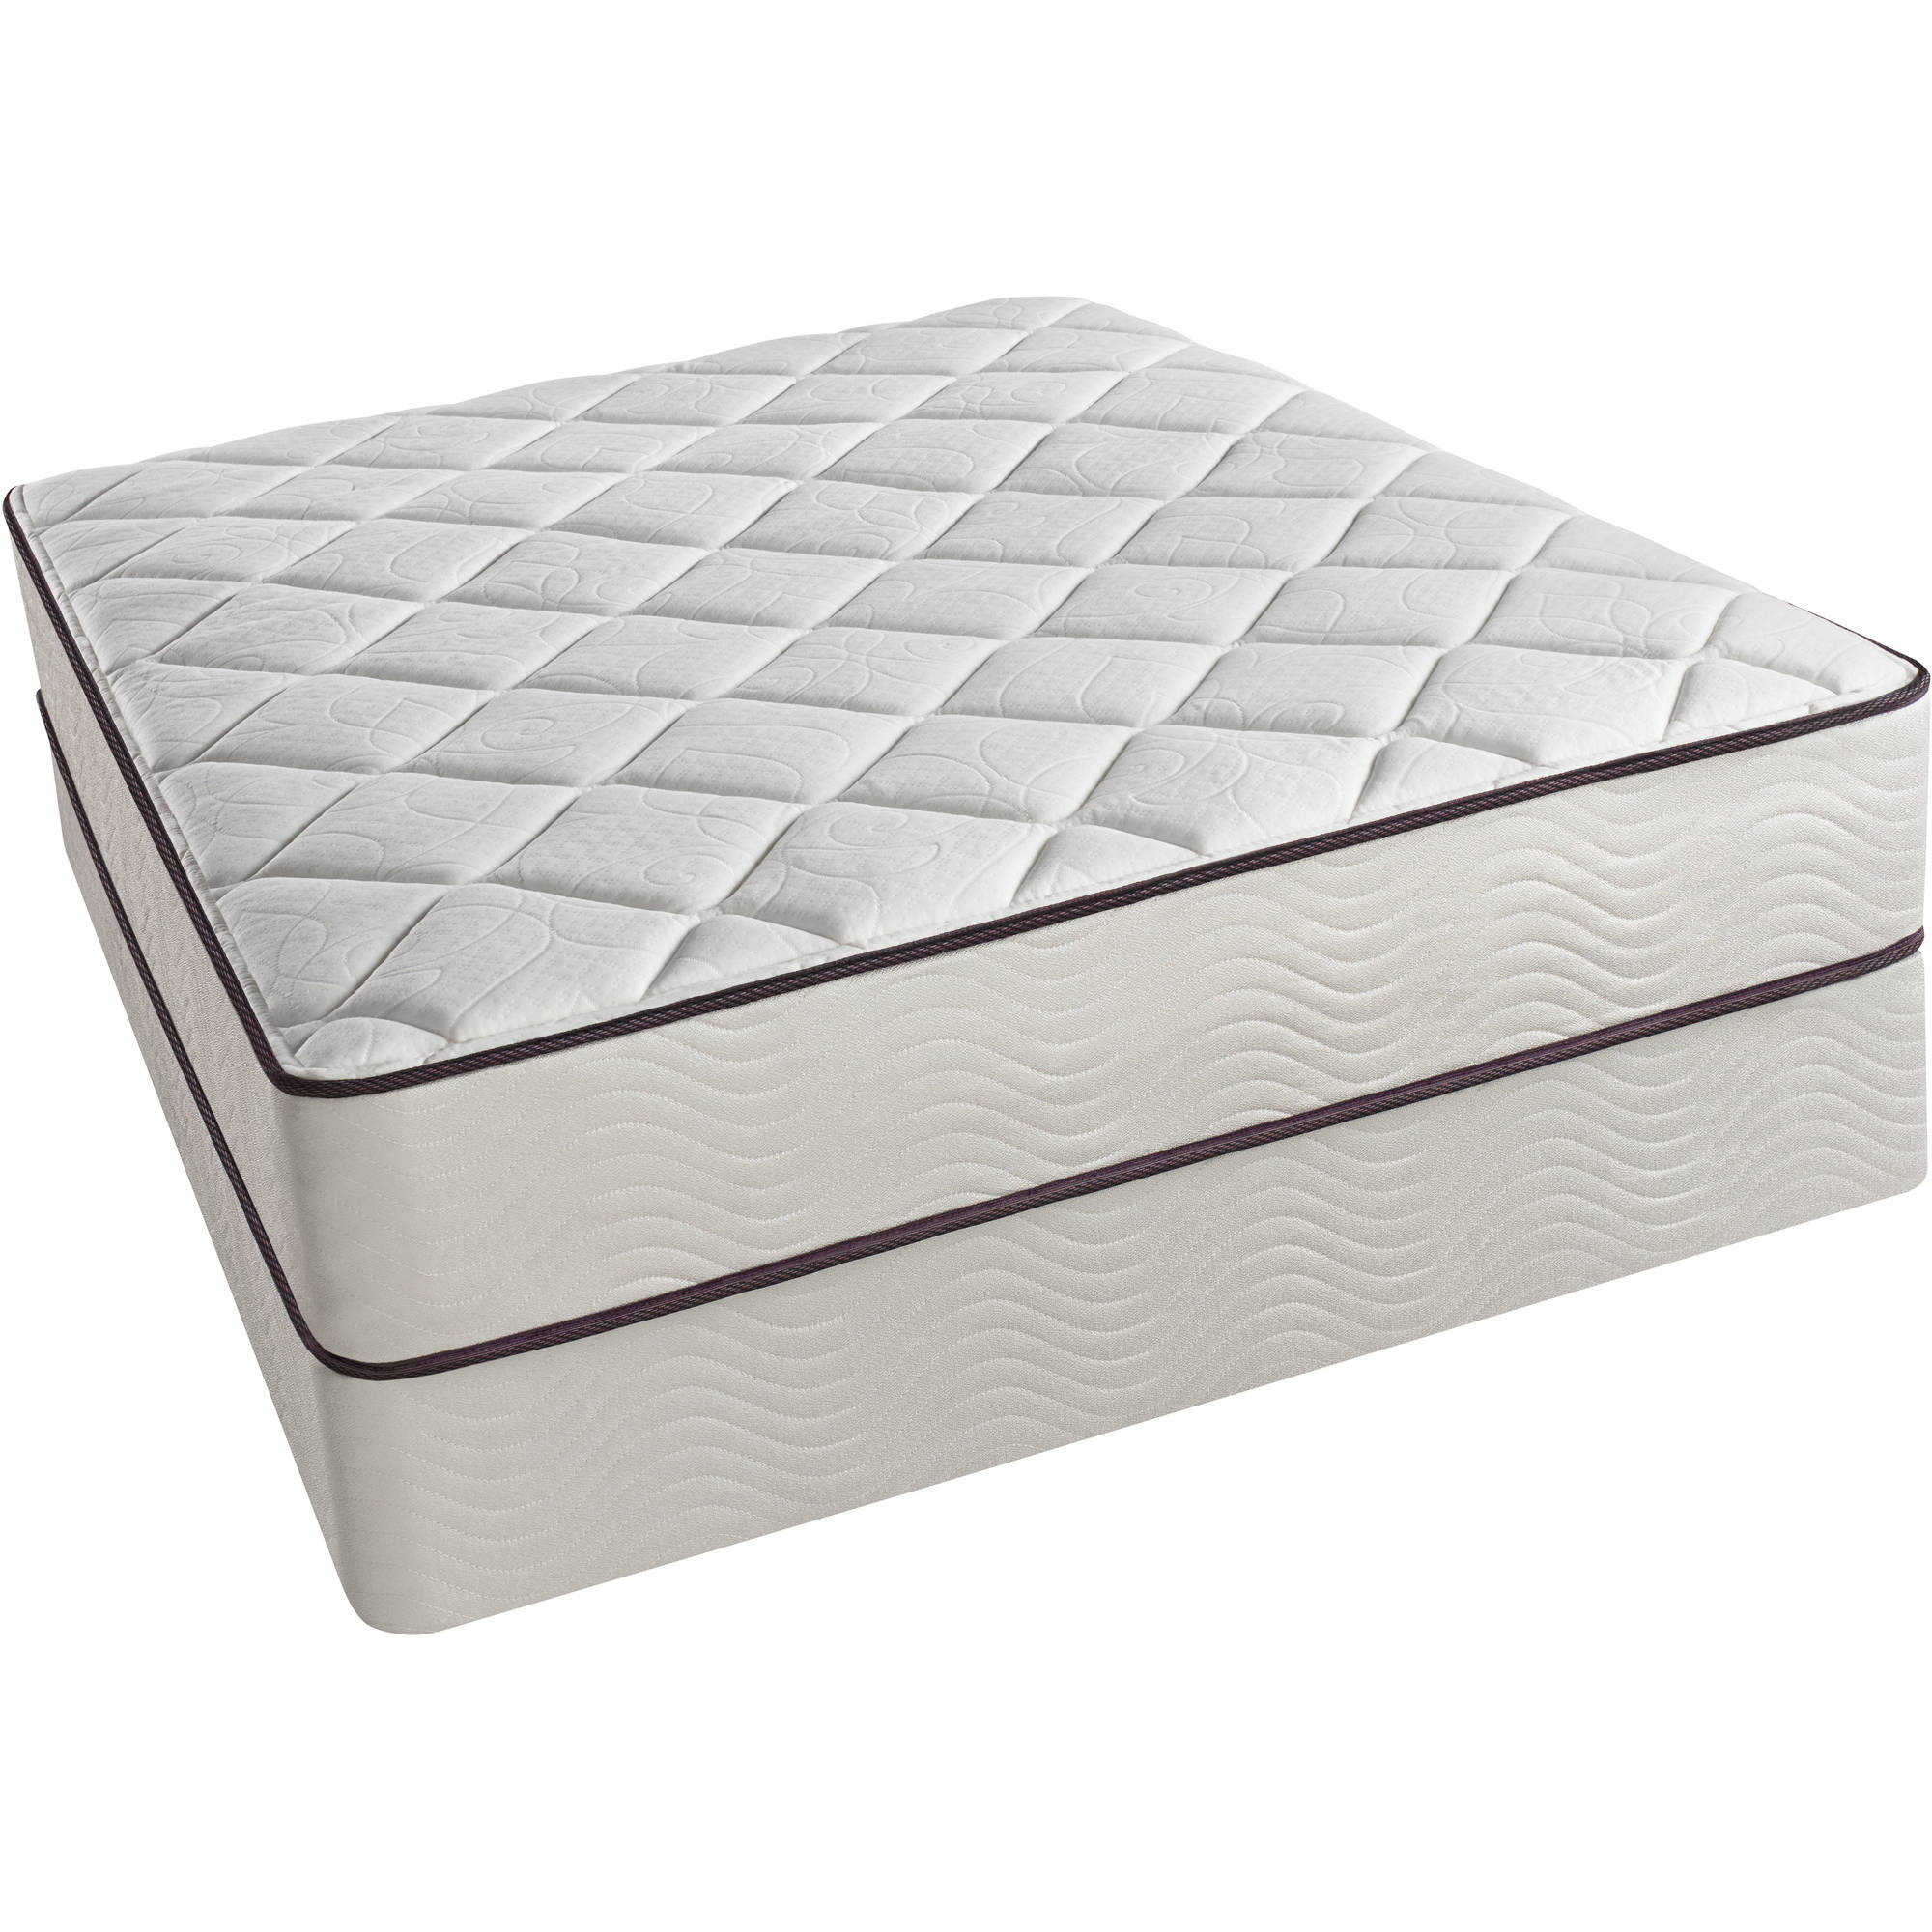 Beautyrest Studio Mattress Set, Multiple Sizes